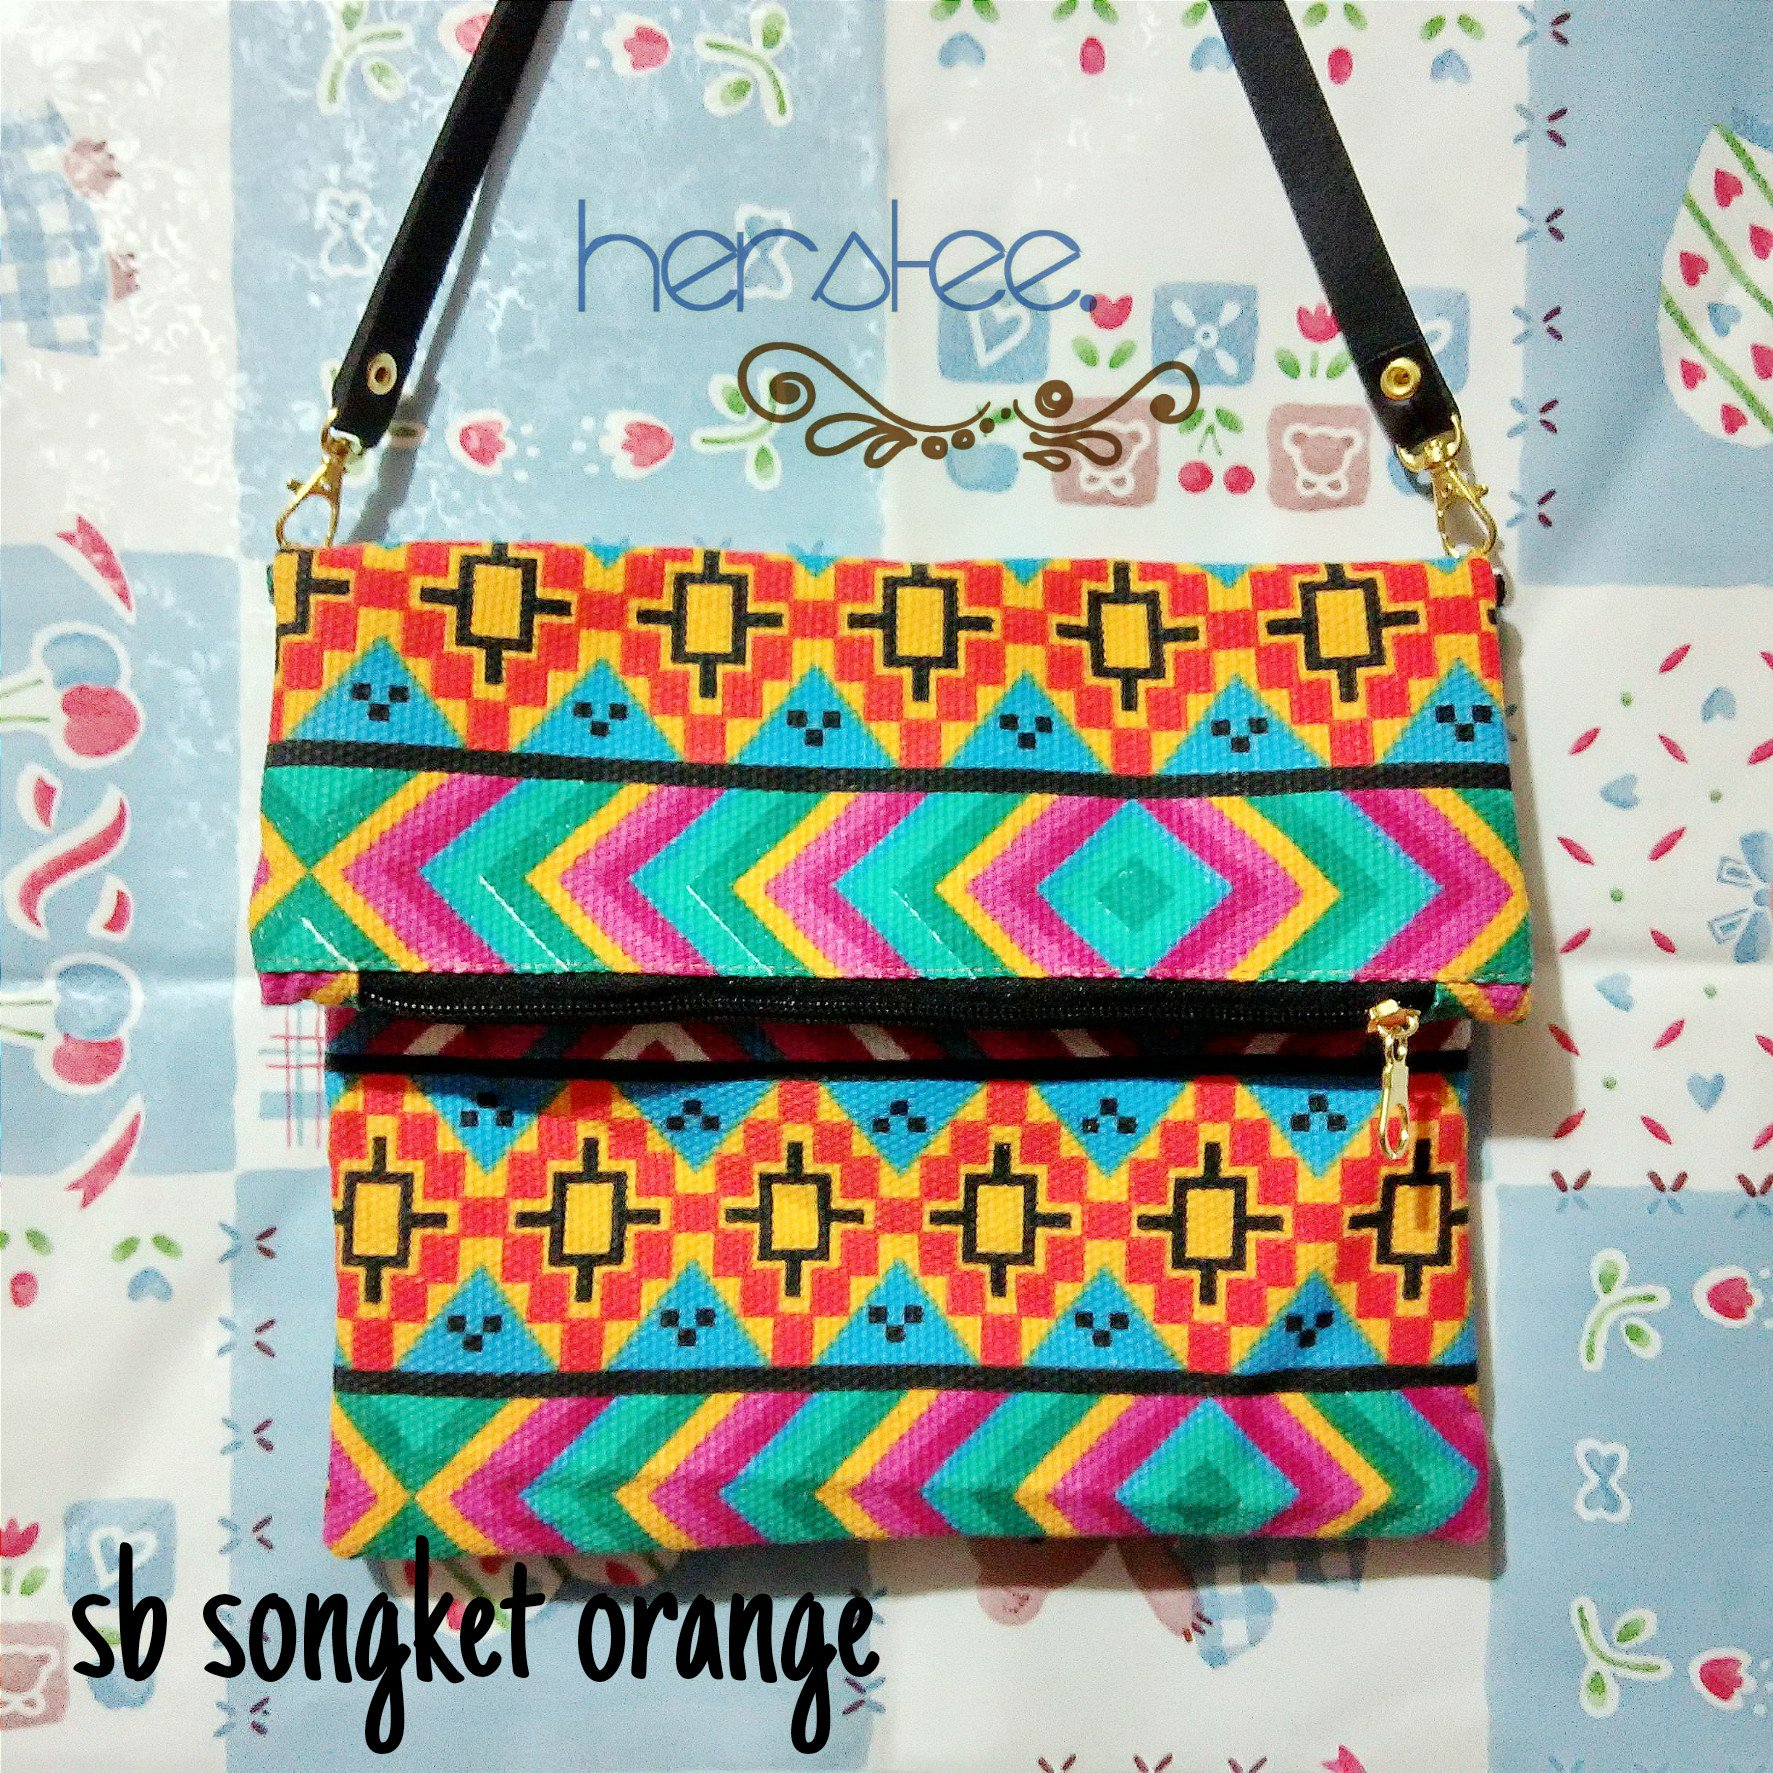 Kode : Sb Songket Orange. Harga : 40K. | PIN: 5941DBB7 | IG : herstee | LINE : https://t.co/aXs5iCpb6J https://t.co/KFZM6Whm1l